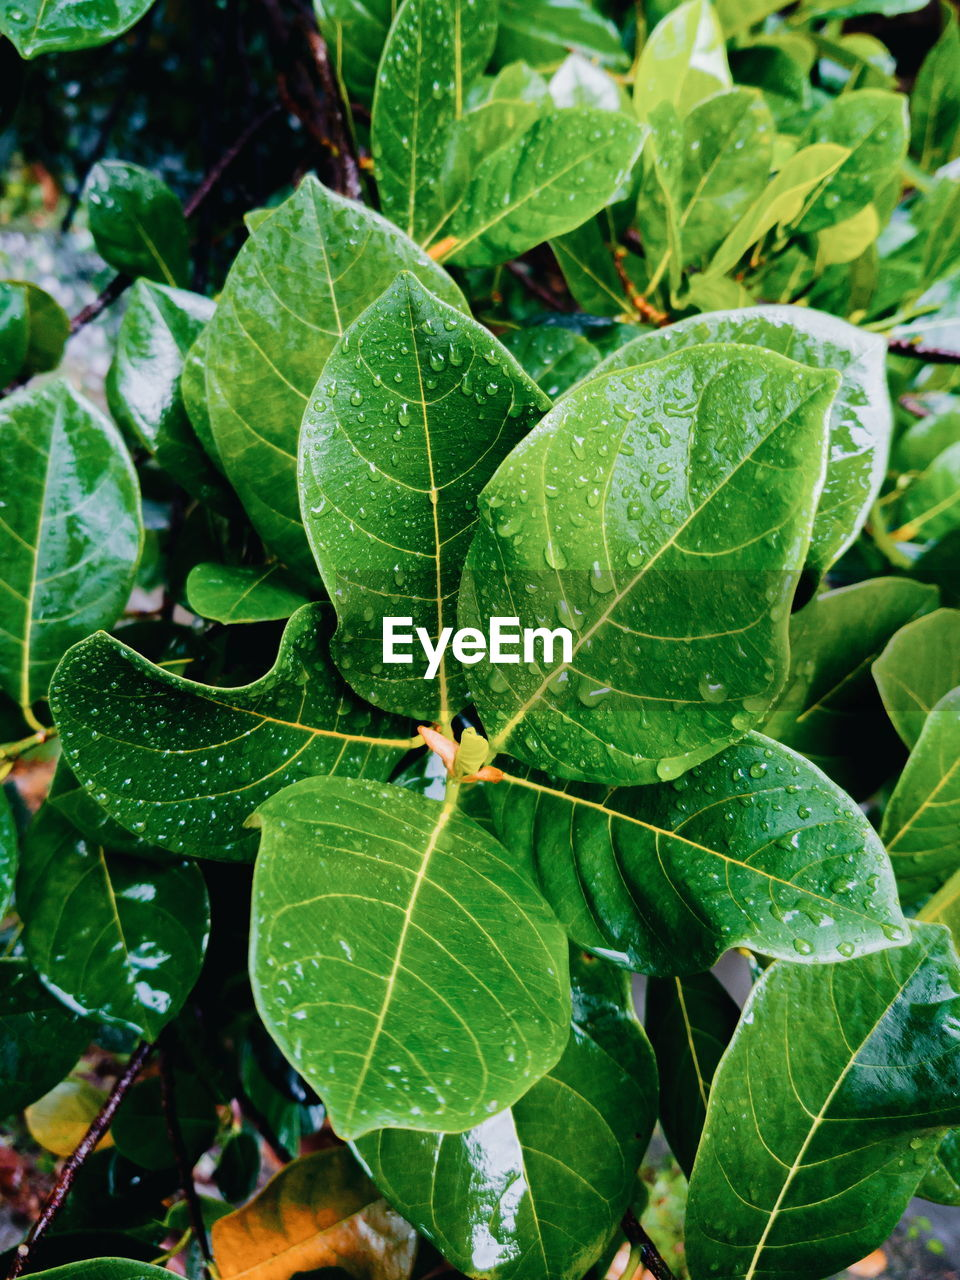 HIGH ANGLE VIEW OF WET PLANT LEAVES